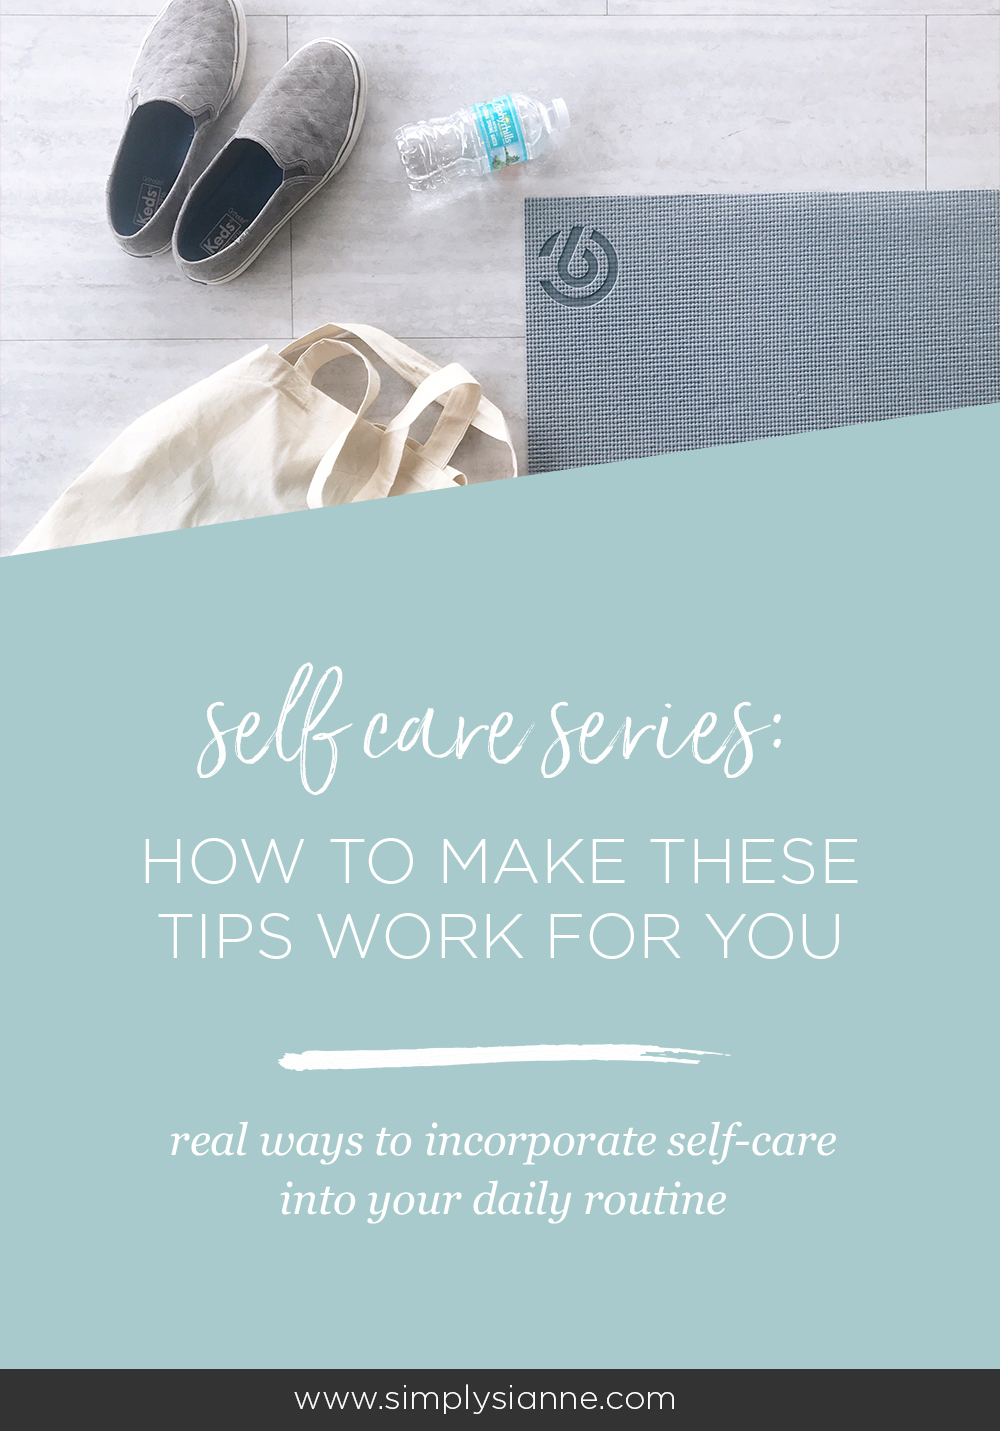 As creative business owners, we put ourselves last, I get it. I've been there. Wrapping up our 3-part self-care series, I'm sharing easy ways to incorporate self-care tips into your daily routine to make them work for you.